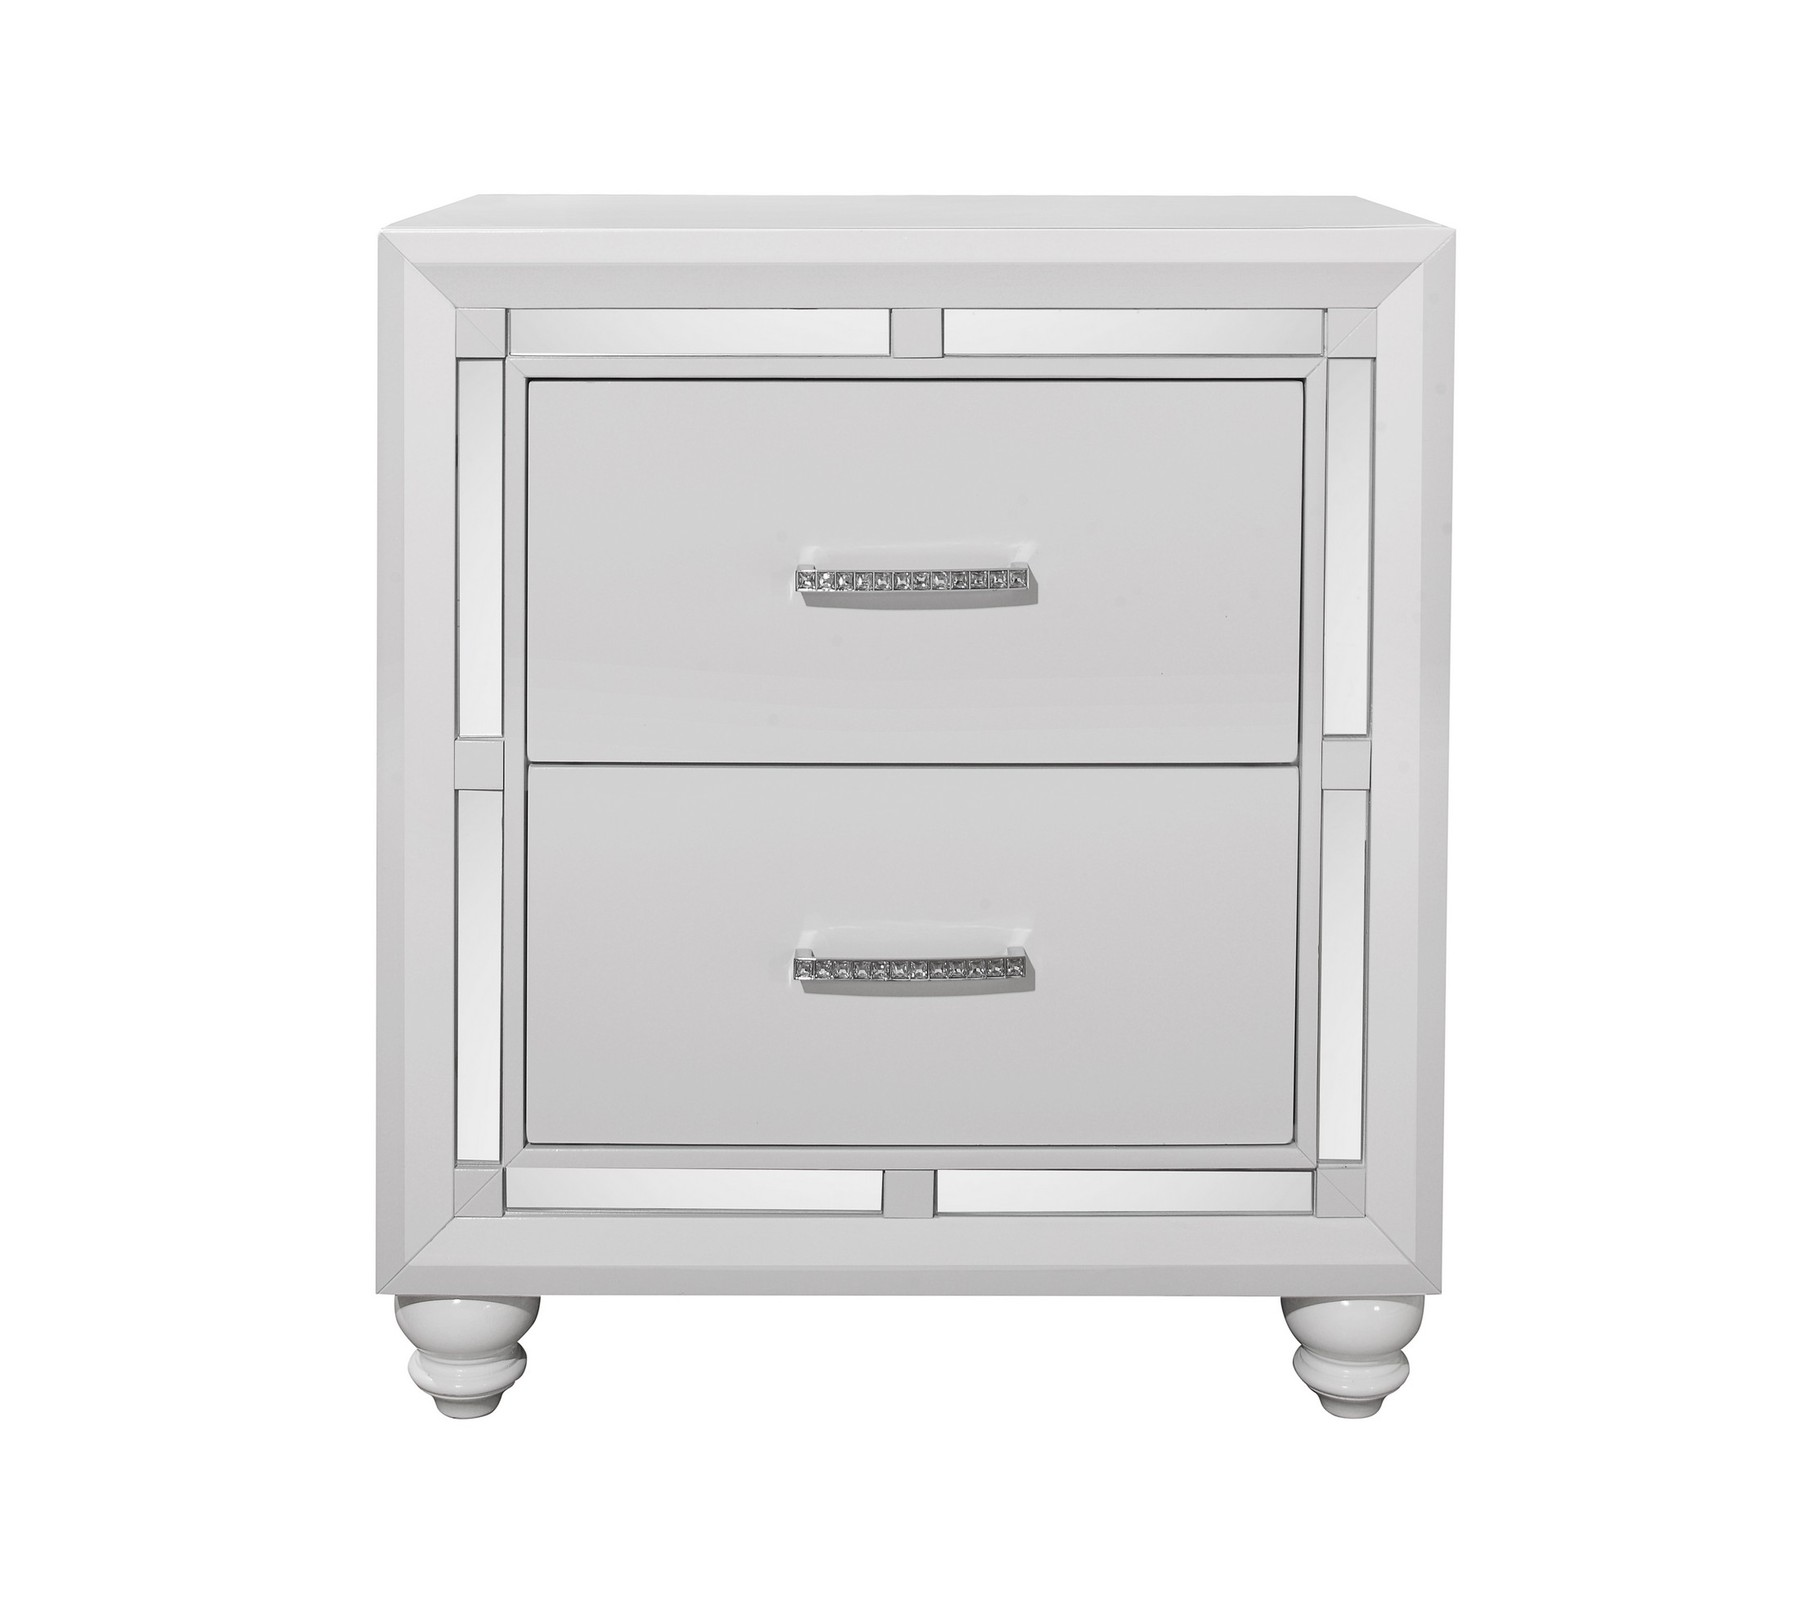 mackenzie night stand global furniture usa stands nst mirrored accent table open new window battery operated led lights bistro and chairs drum shaped bedside tables annie sloan